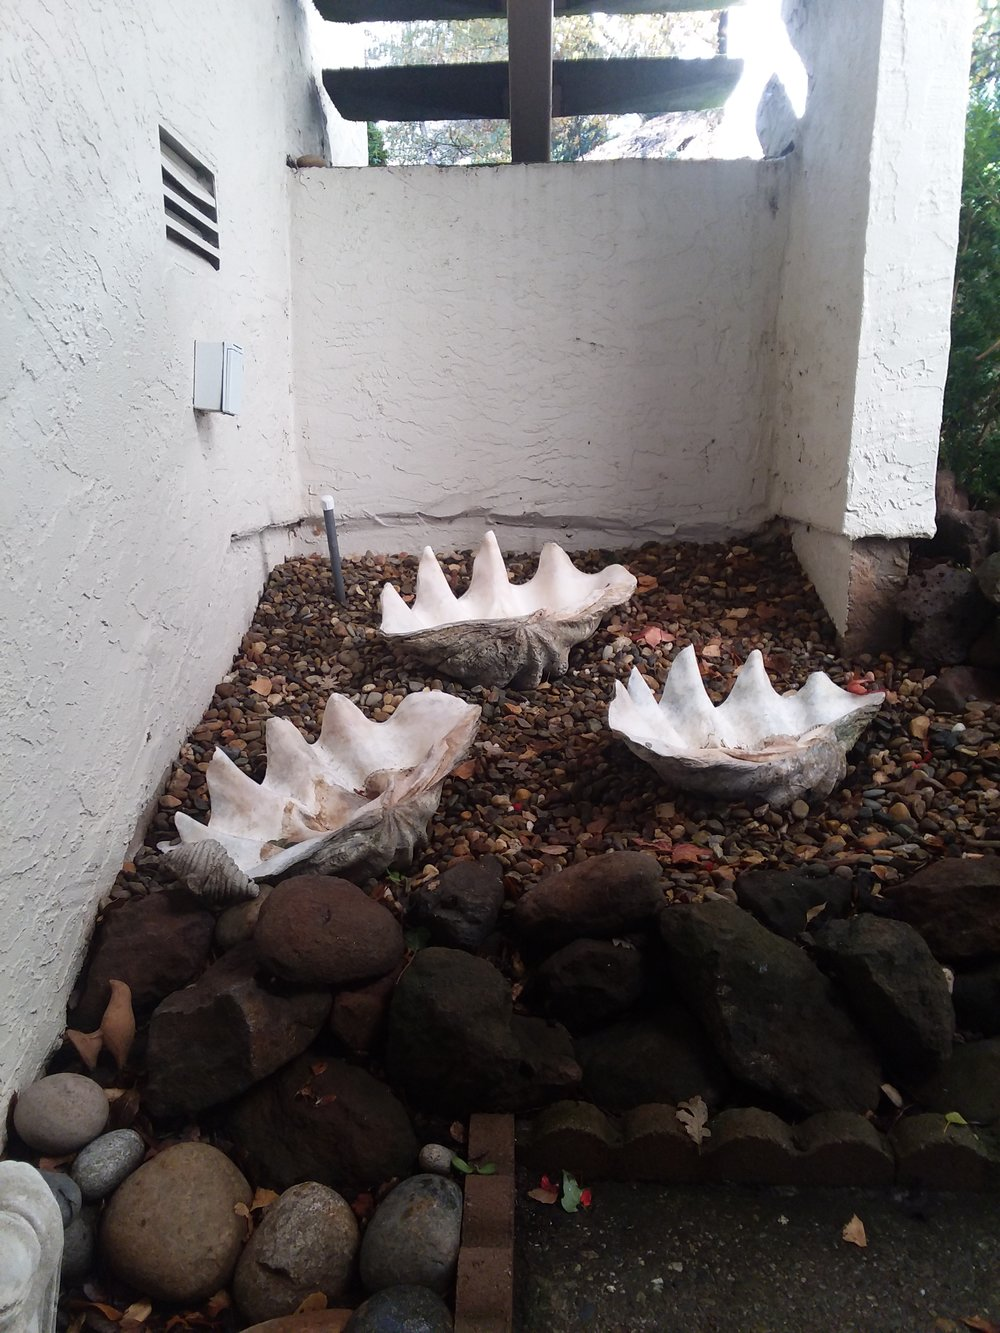 Giant Clam Shells Under Stairwell on Initial Consultation on 11-24-18.jpg